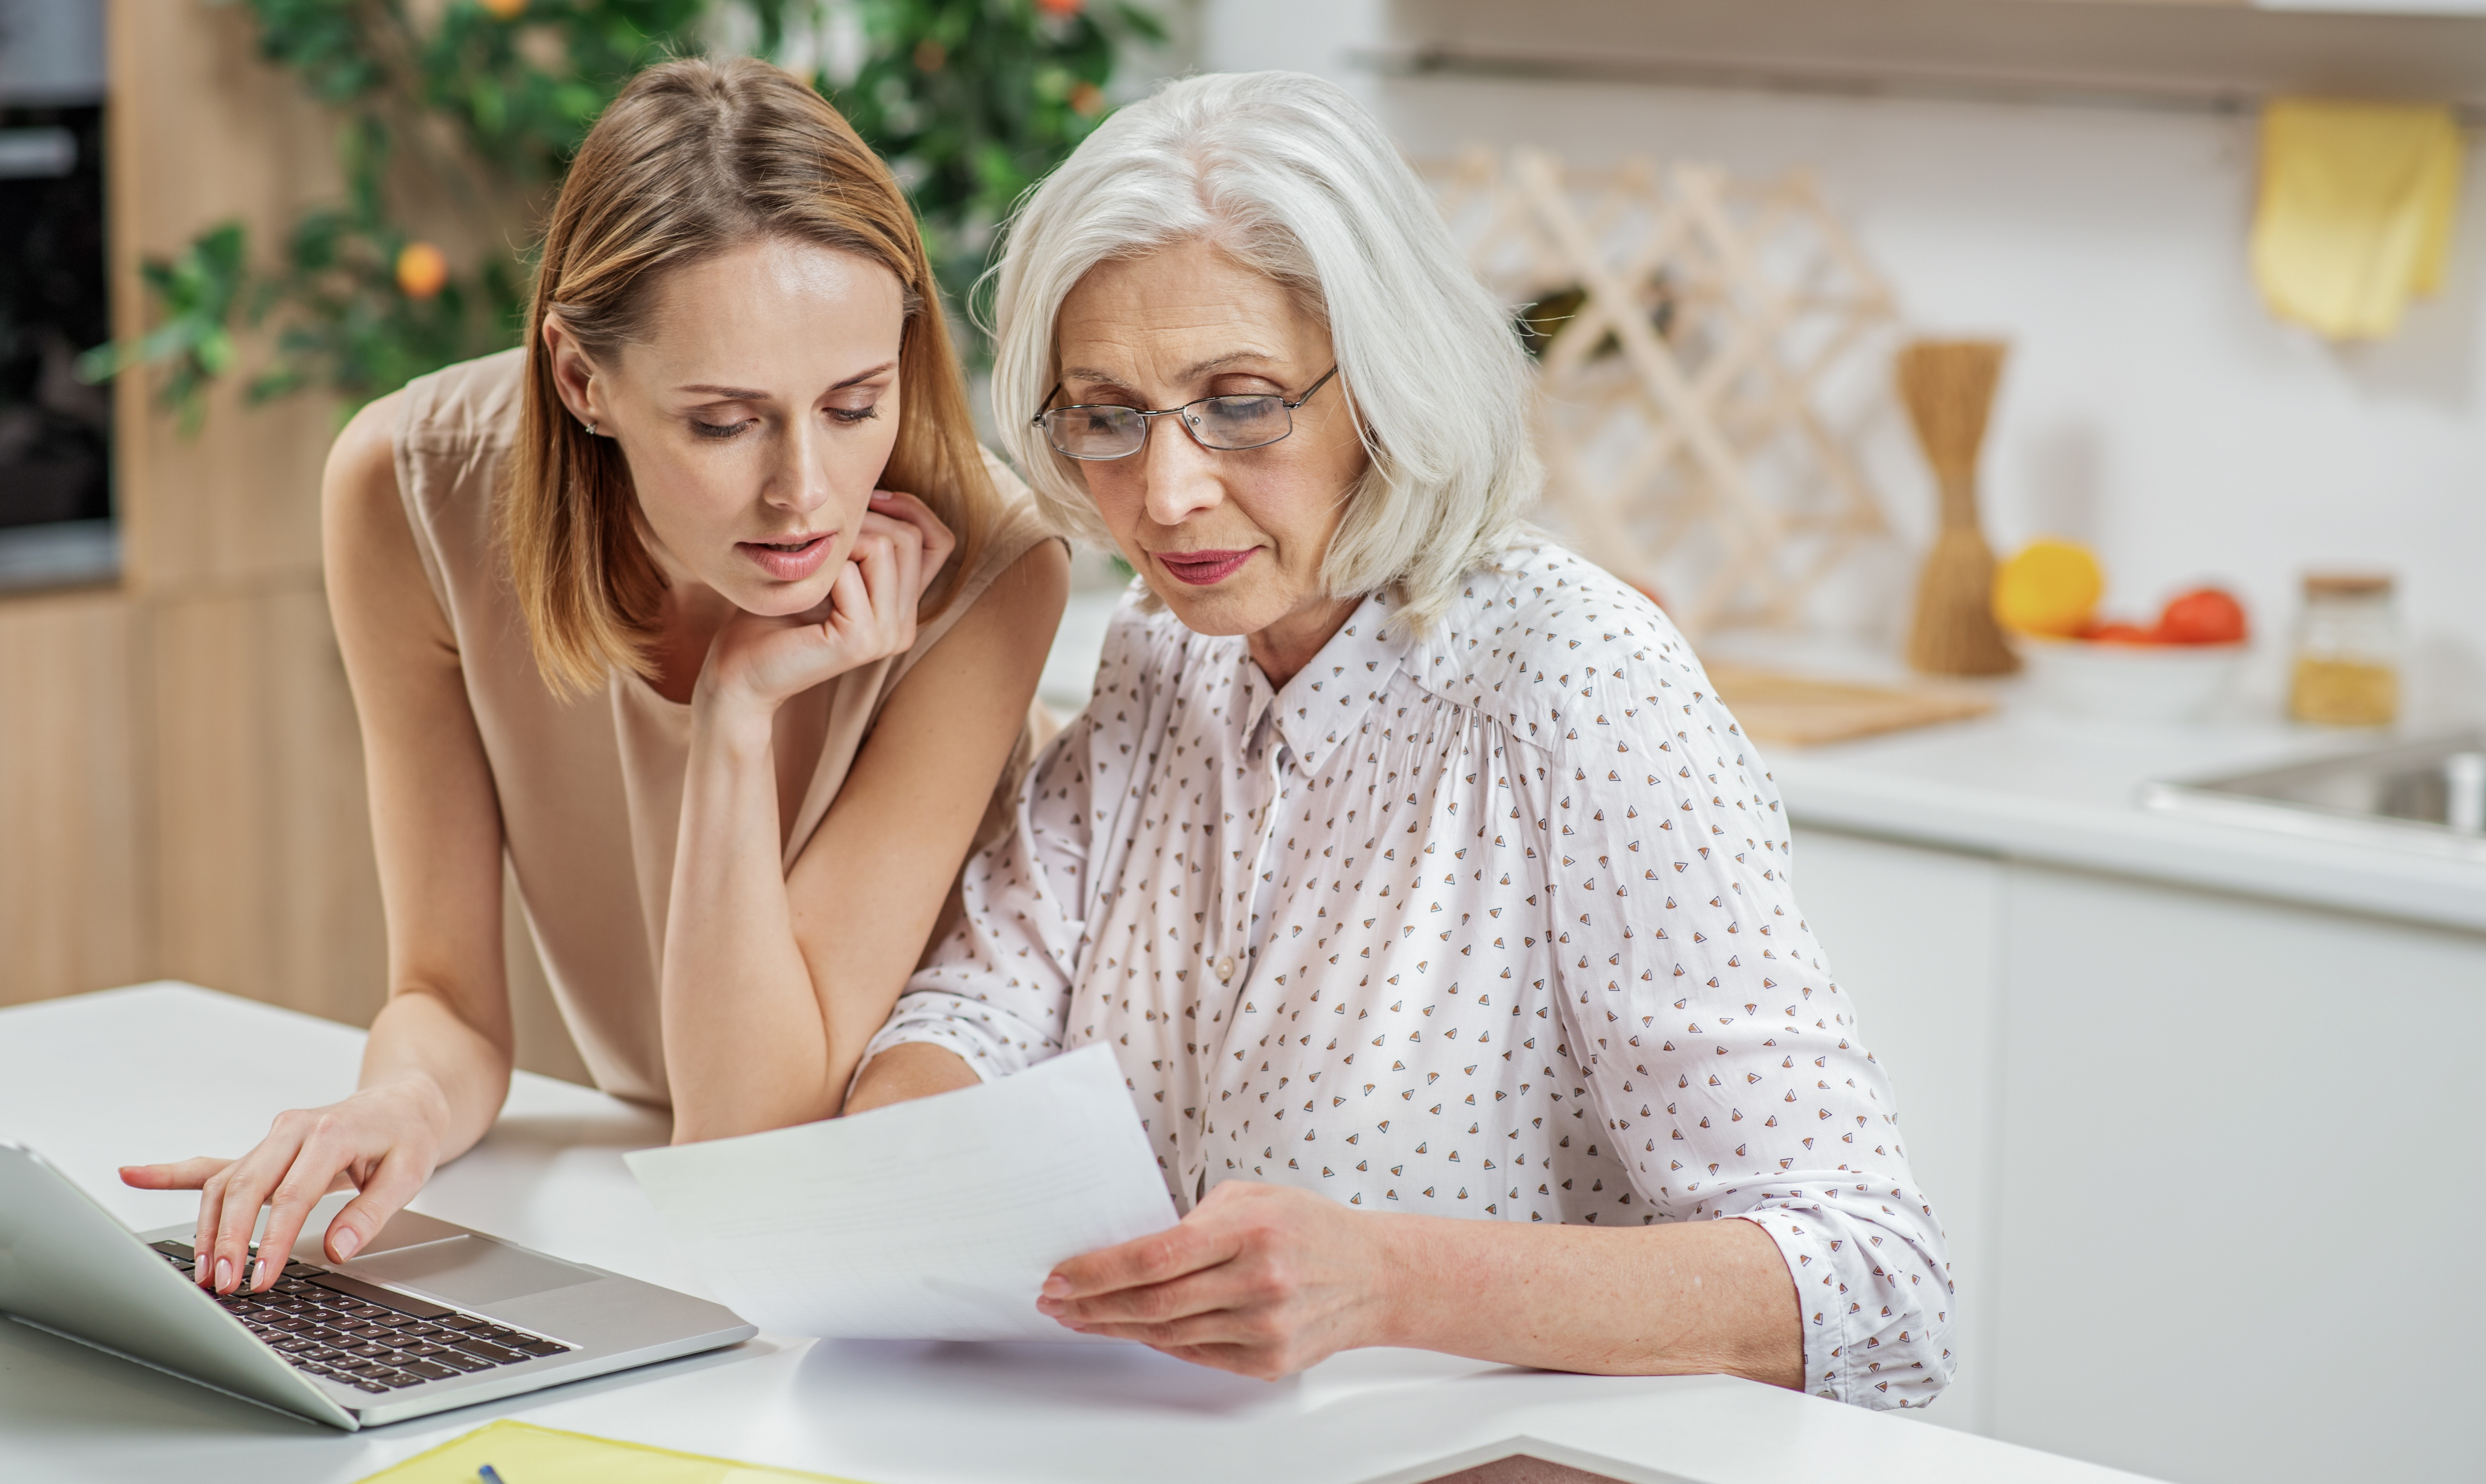 Reviewing Senior Care Options With Your Loved One